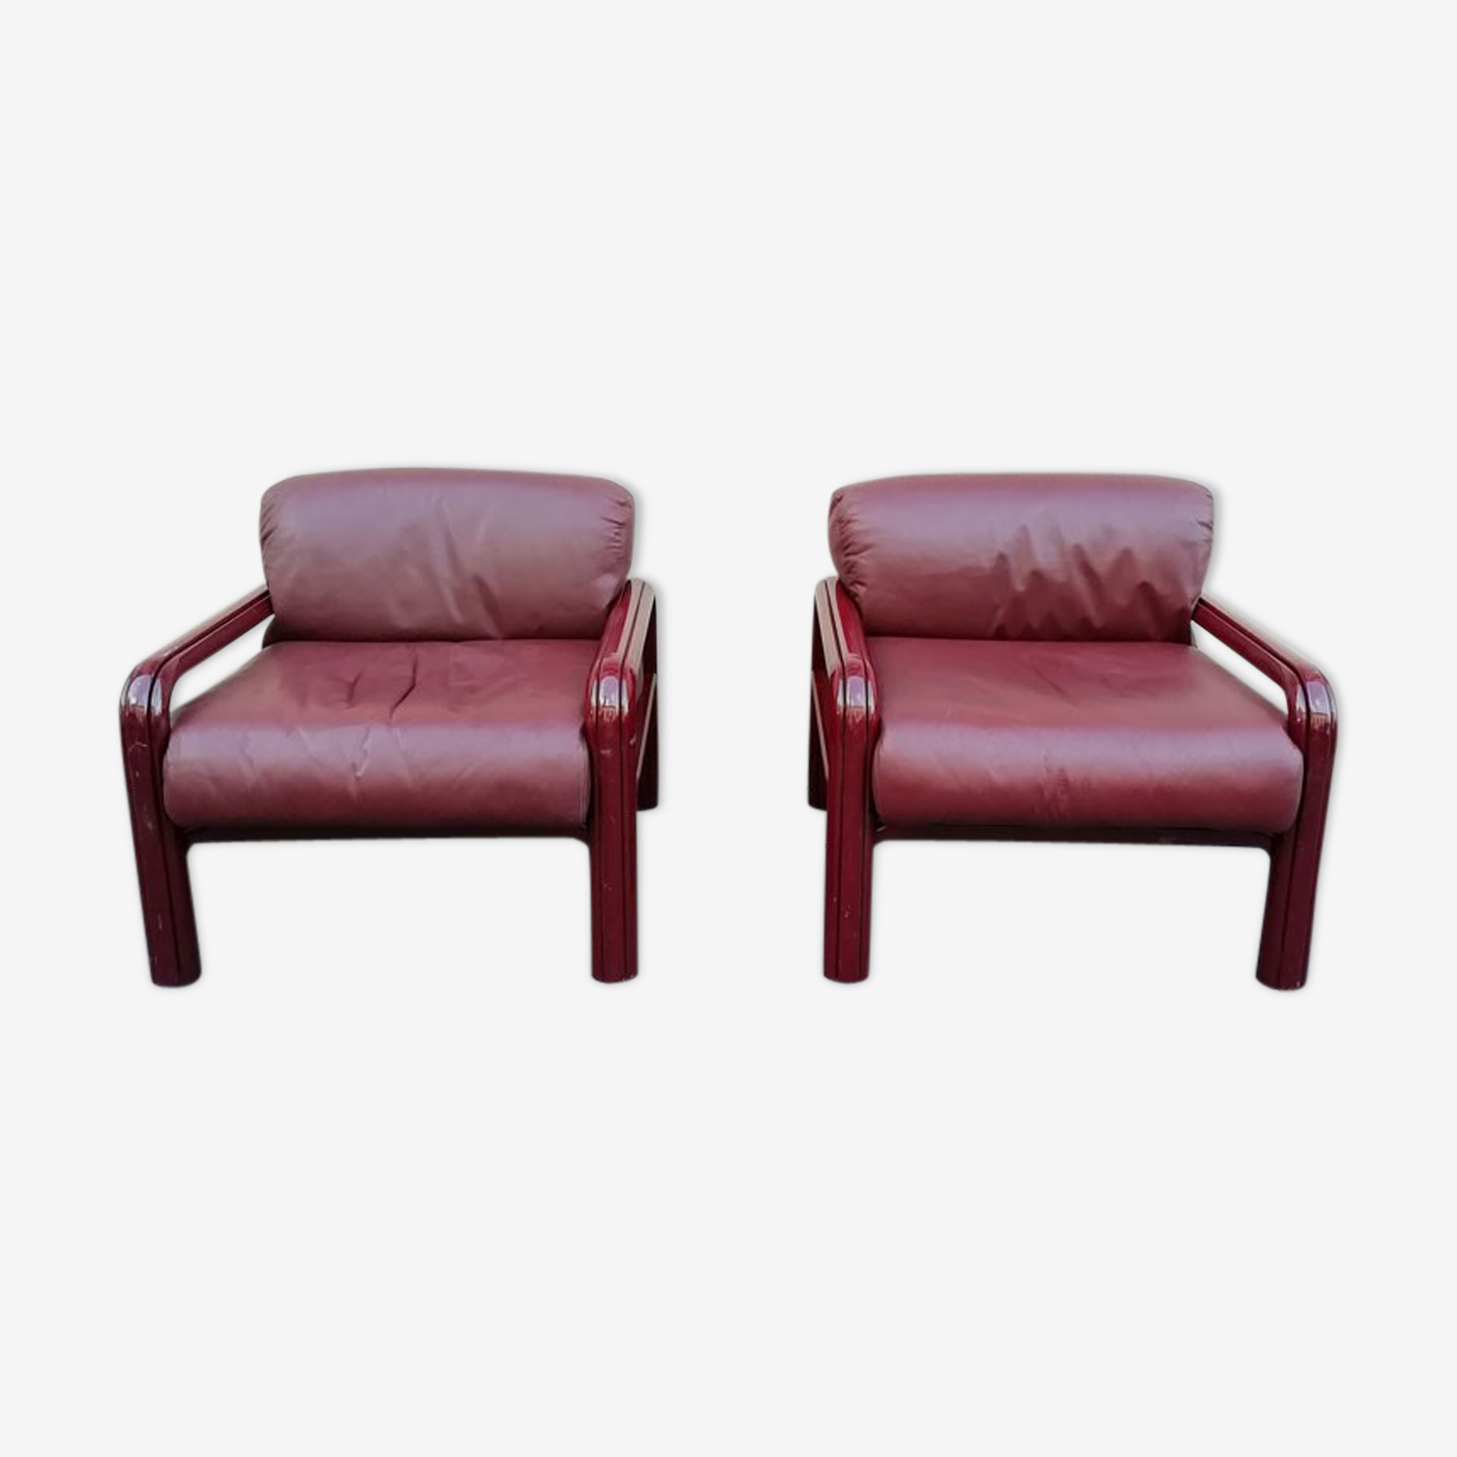 Pair of armchairs Gae Aulenti